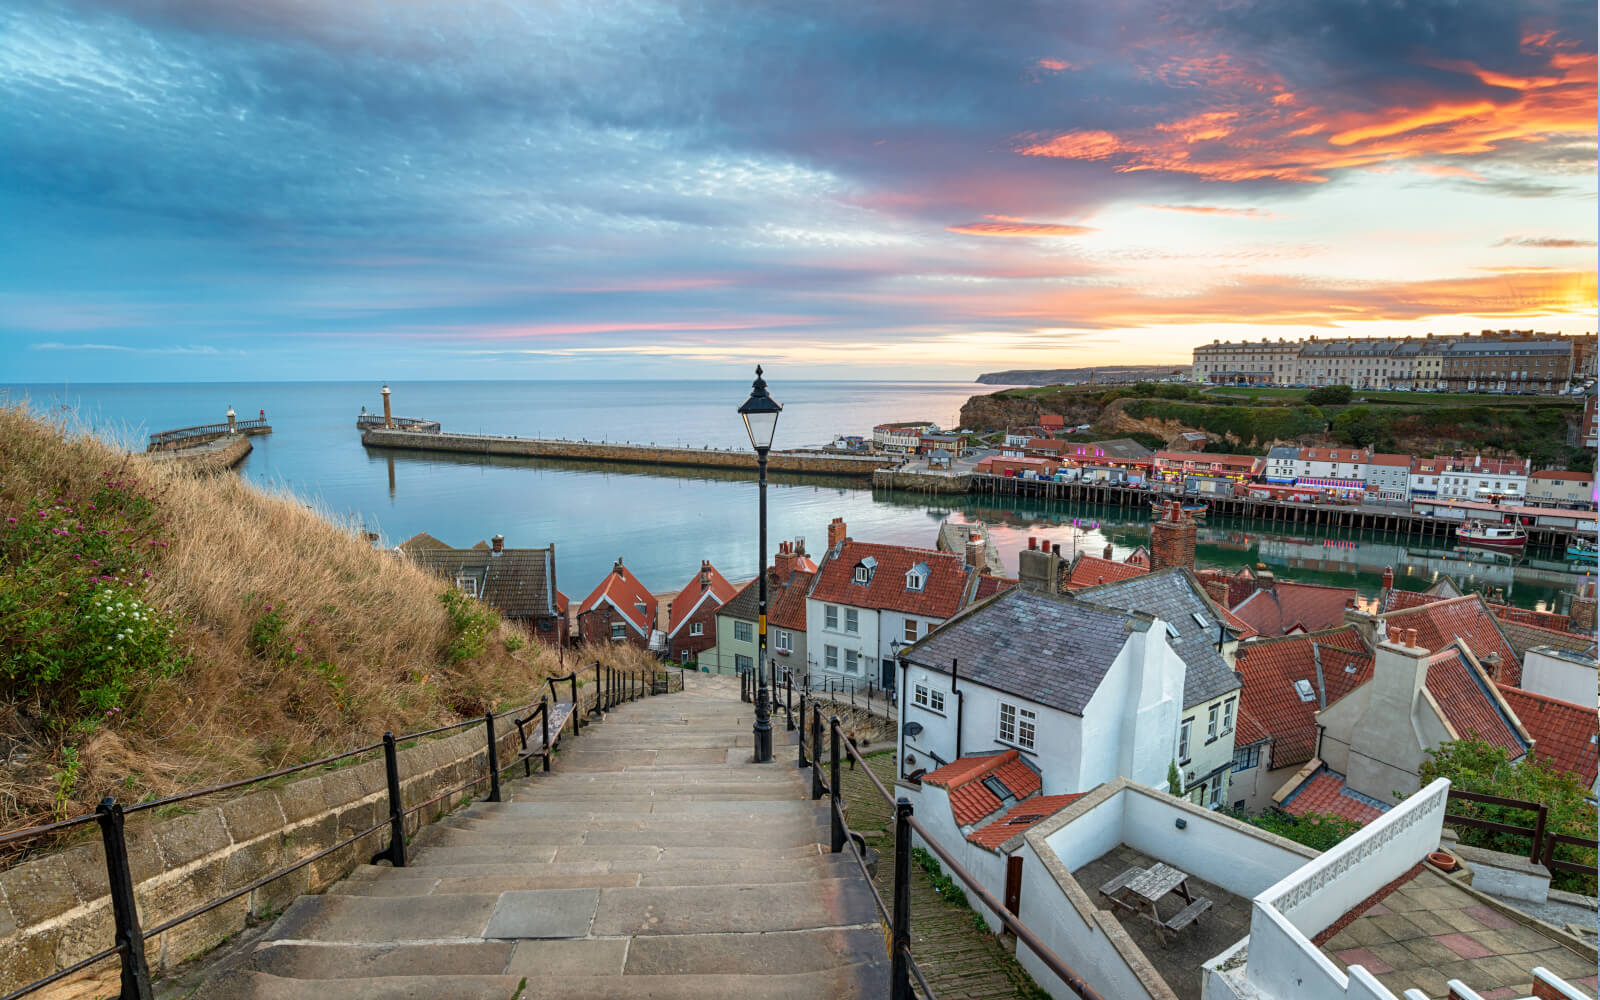 Holiday Cottages With Gardens In Whitby To Rent - Save up to 60%